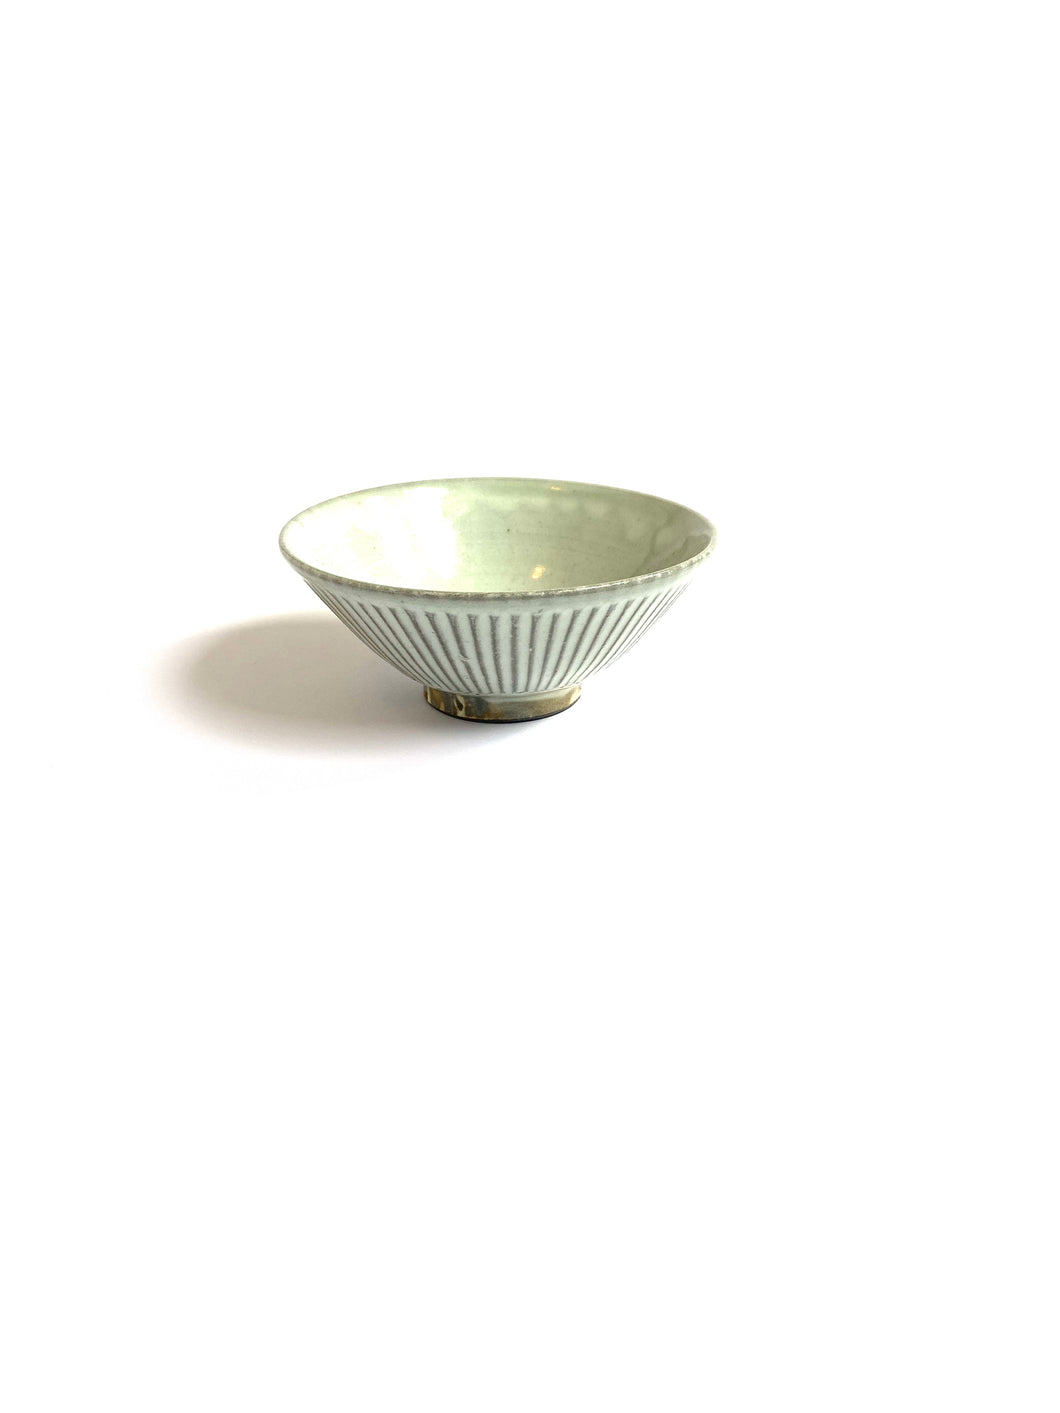 Japanese Ceramic Rice Bowl Shinogi - 粉引平茶碗鎬文